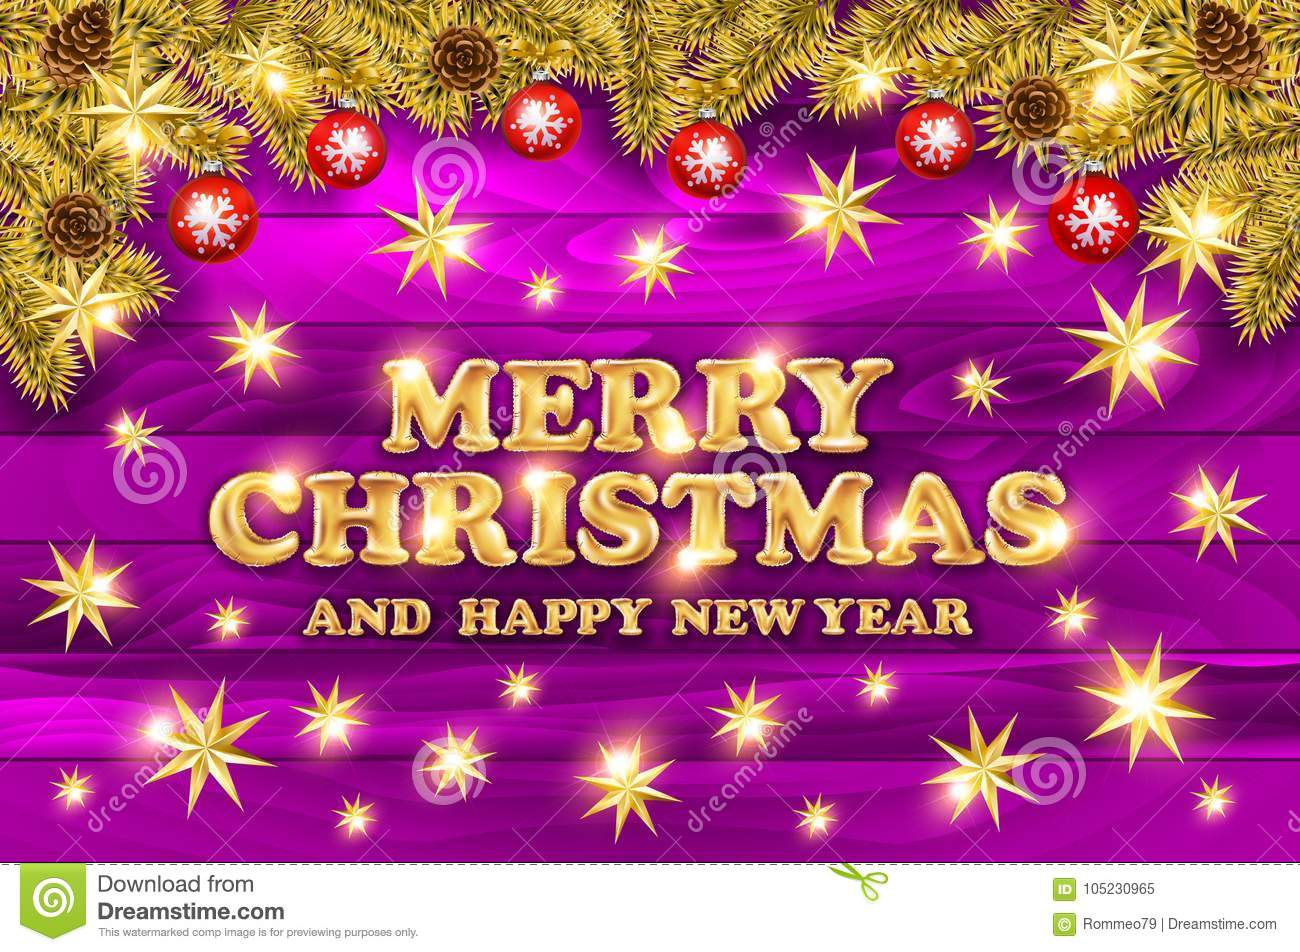 Vector Merry Christmas And Happy New Year Greeting Card With Gold